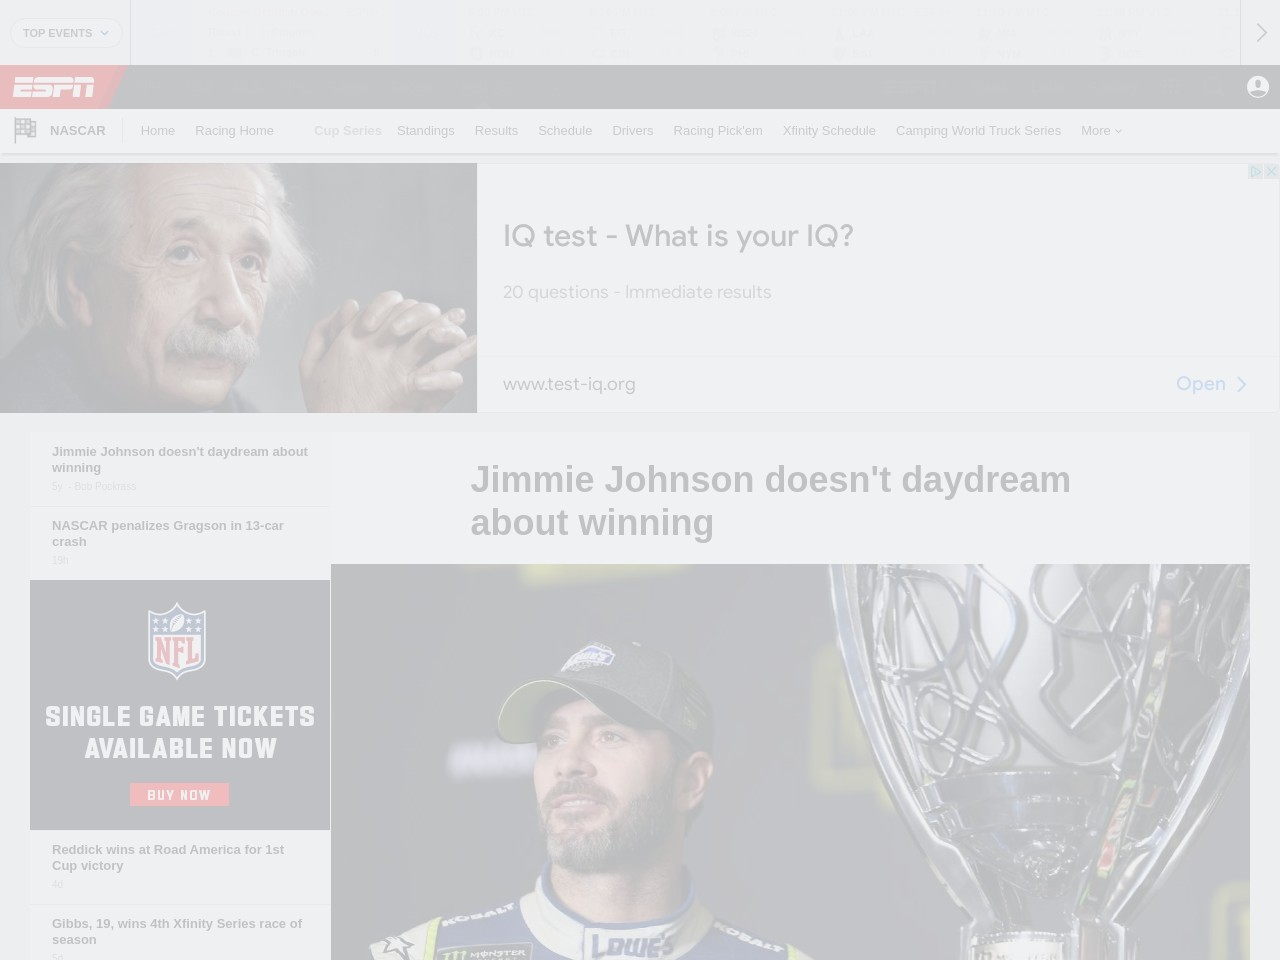 Jimmie Johnson doesn't daydream about winning